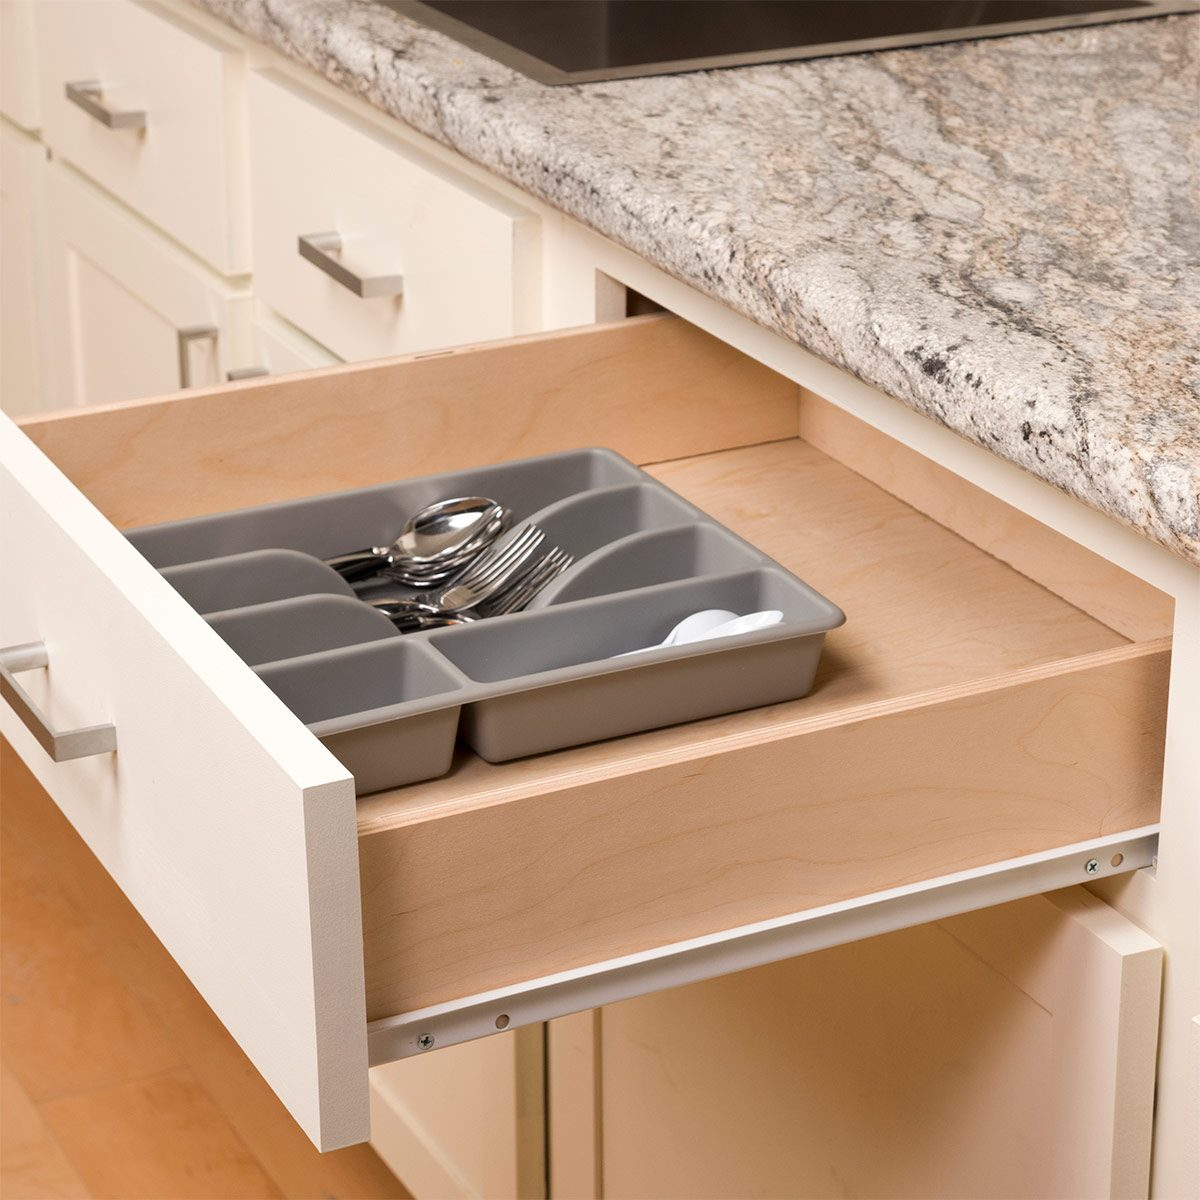 drawer organizer moves around inside the drawer